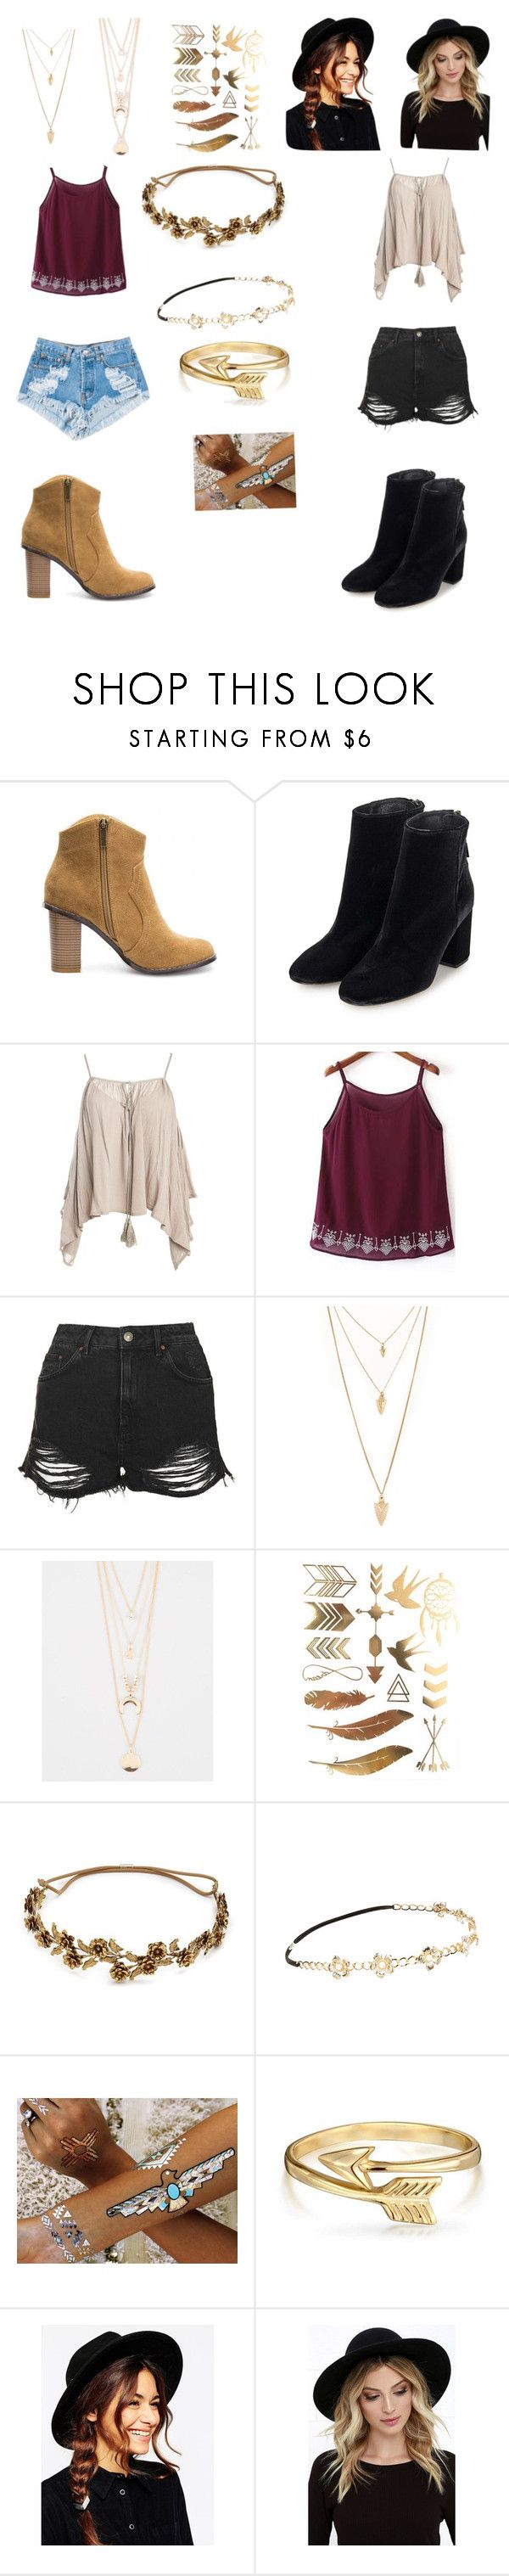 """Coachella"" by gabriellemv ❤ liked on Polyvore featuring Topshop, Sans Souci, Levi's, Forever 21, Full Tilt, Jennifer Behr, Chicnova Fashion, Flash Tattoos, Bling Jewelry and ASOS"